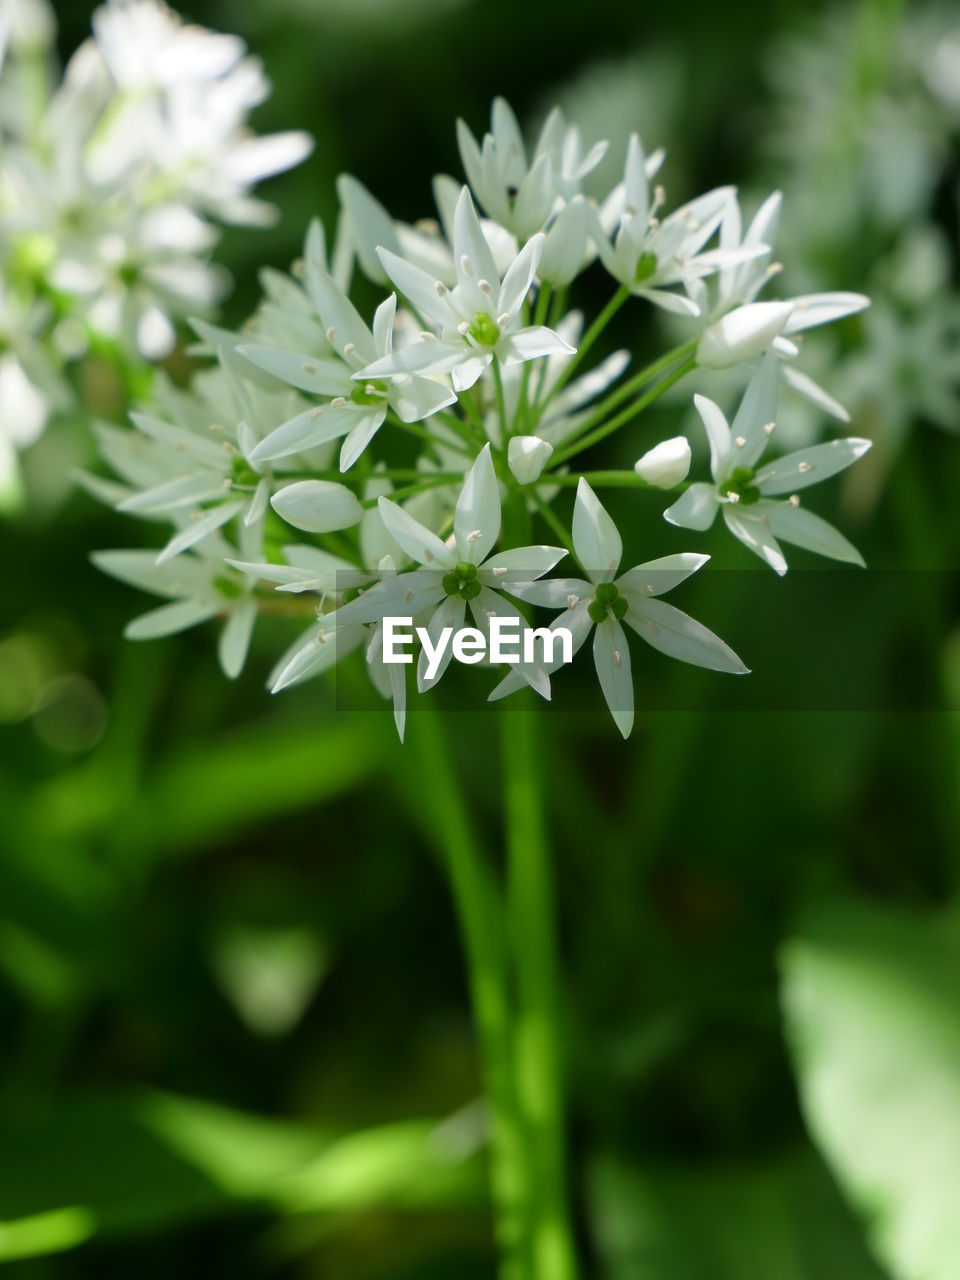 flower, flowering plant, vulnerability, fragility, freshness, plant, beauty in nature, growth, close-up, petal, white color, focus on foreground, nature, no people, flower head, day, green color, inflorescence, botany, outdoors